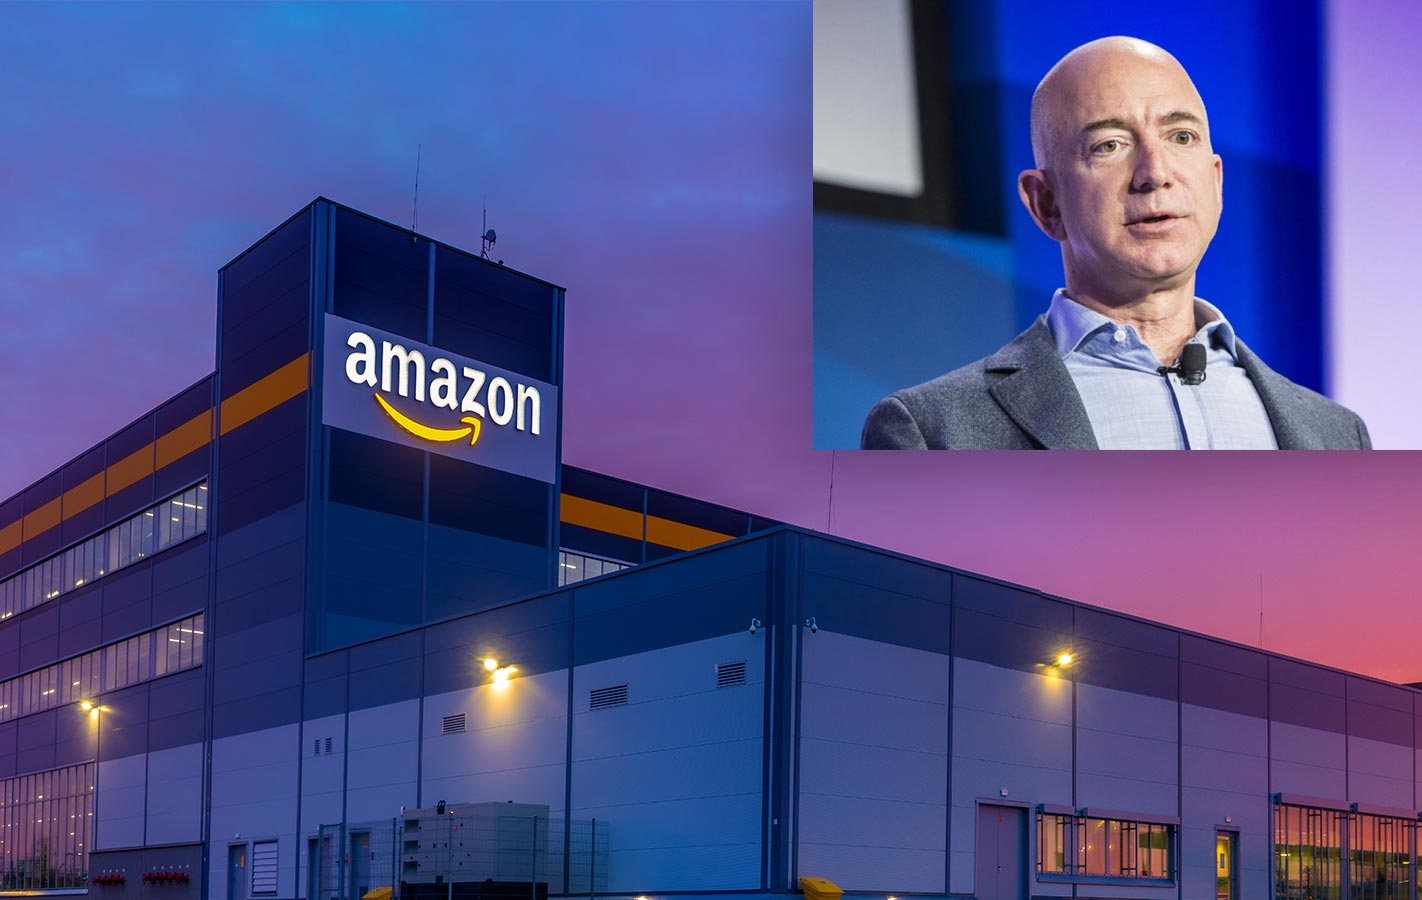 Jeff Bezos moving on as Amazon CEO